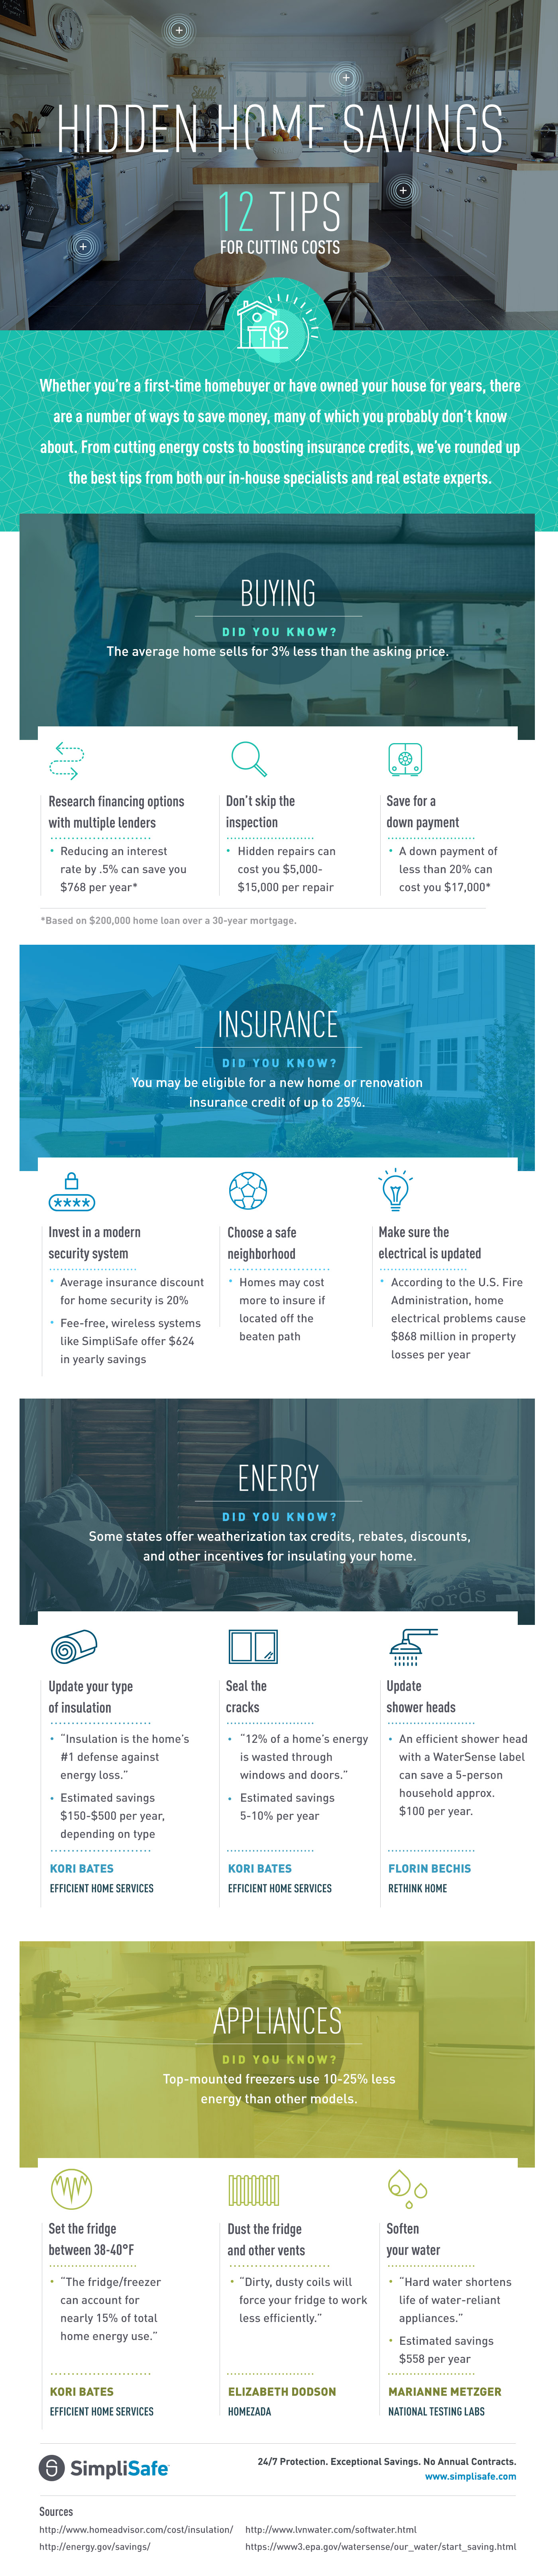 simplisafe_hidden_home_savings